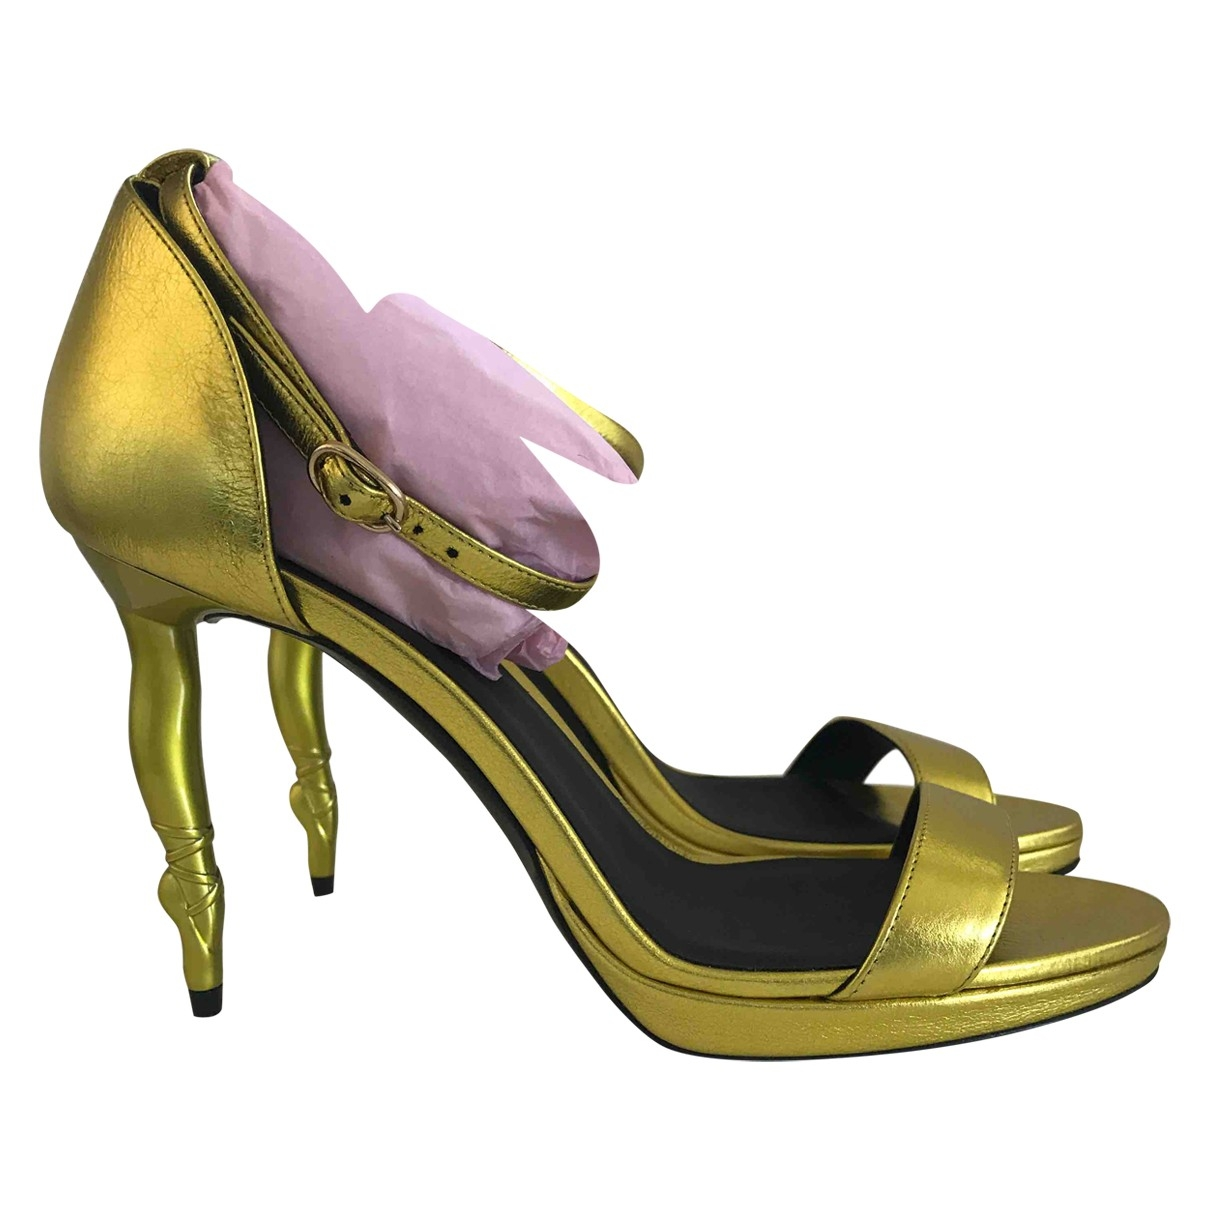 Repetto \N Metallic Leather Heels for Women 38 IT